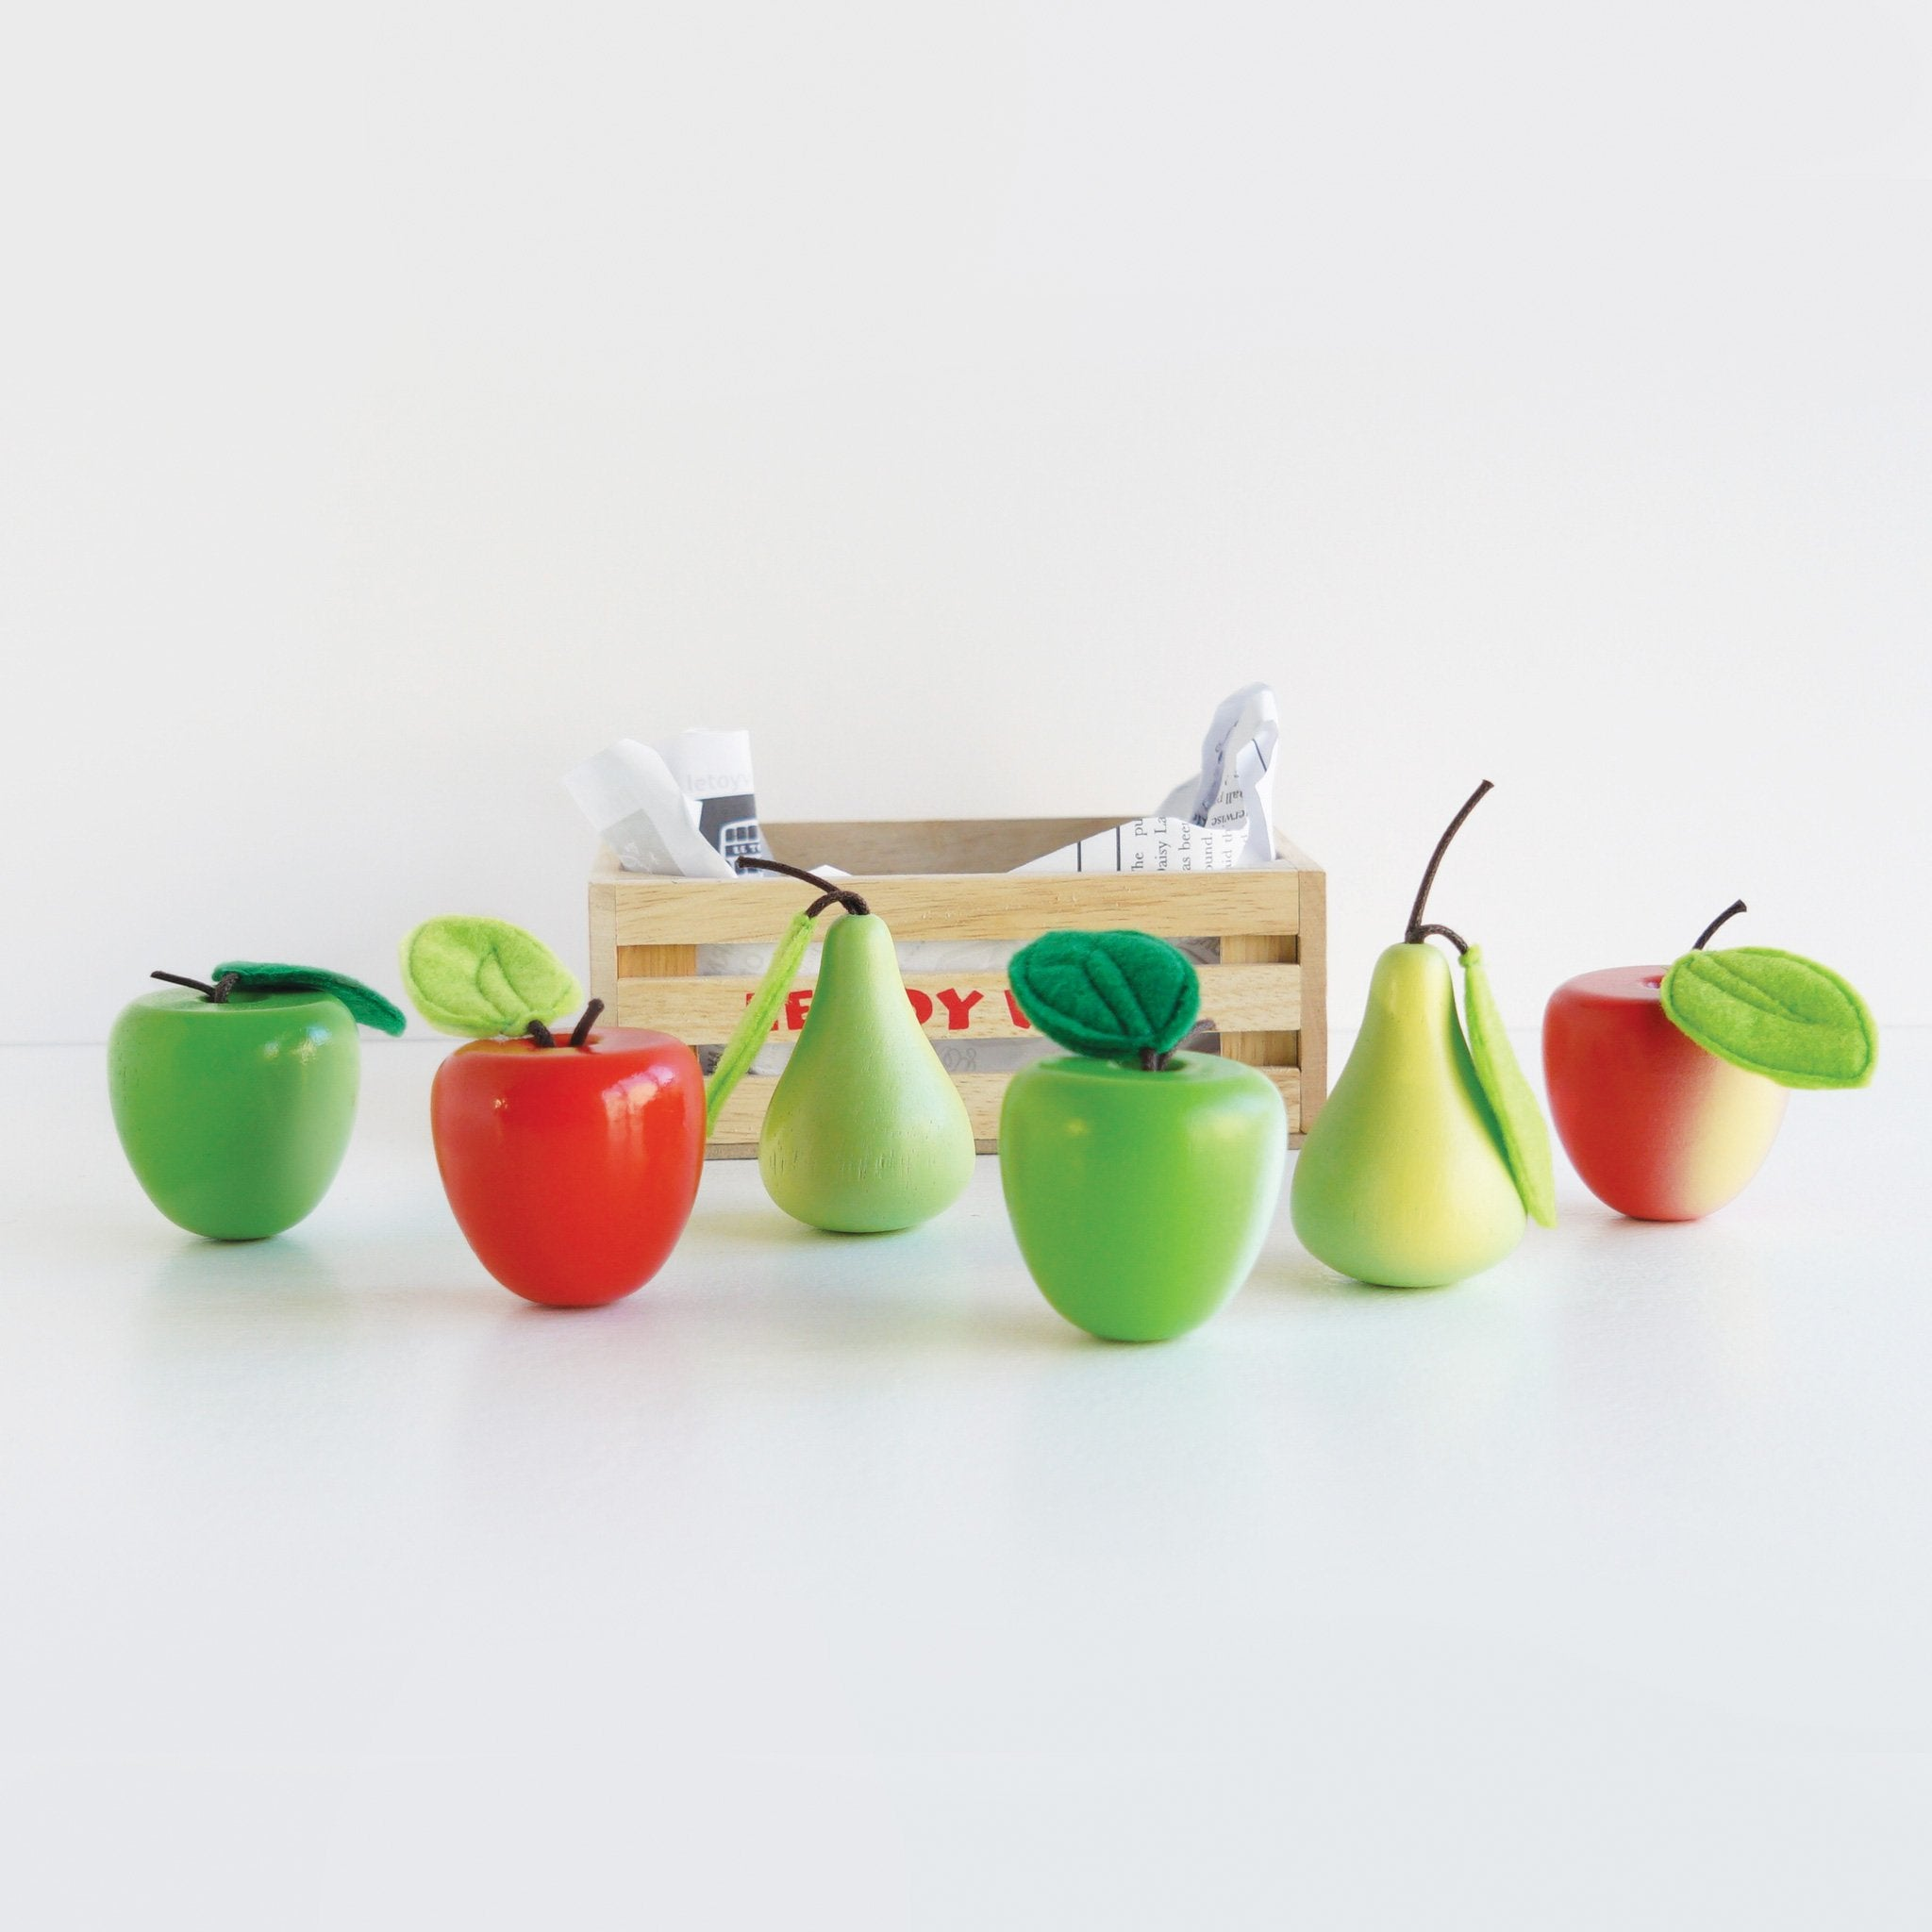 Le Toy Van Apples & Pears Market Crate